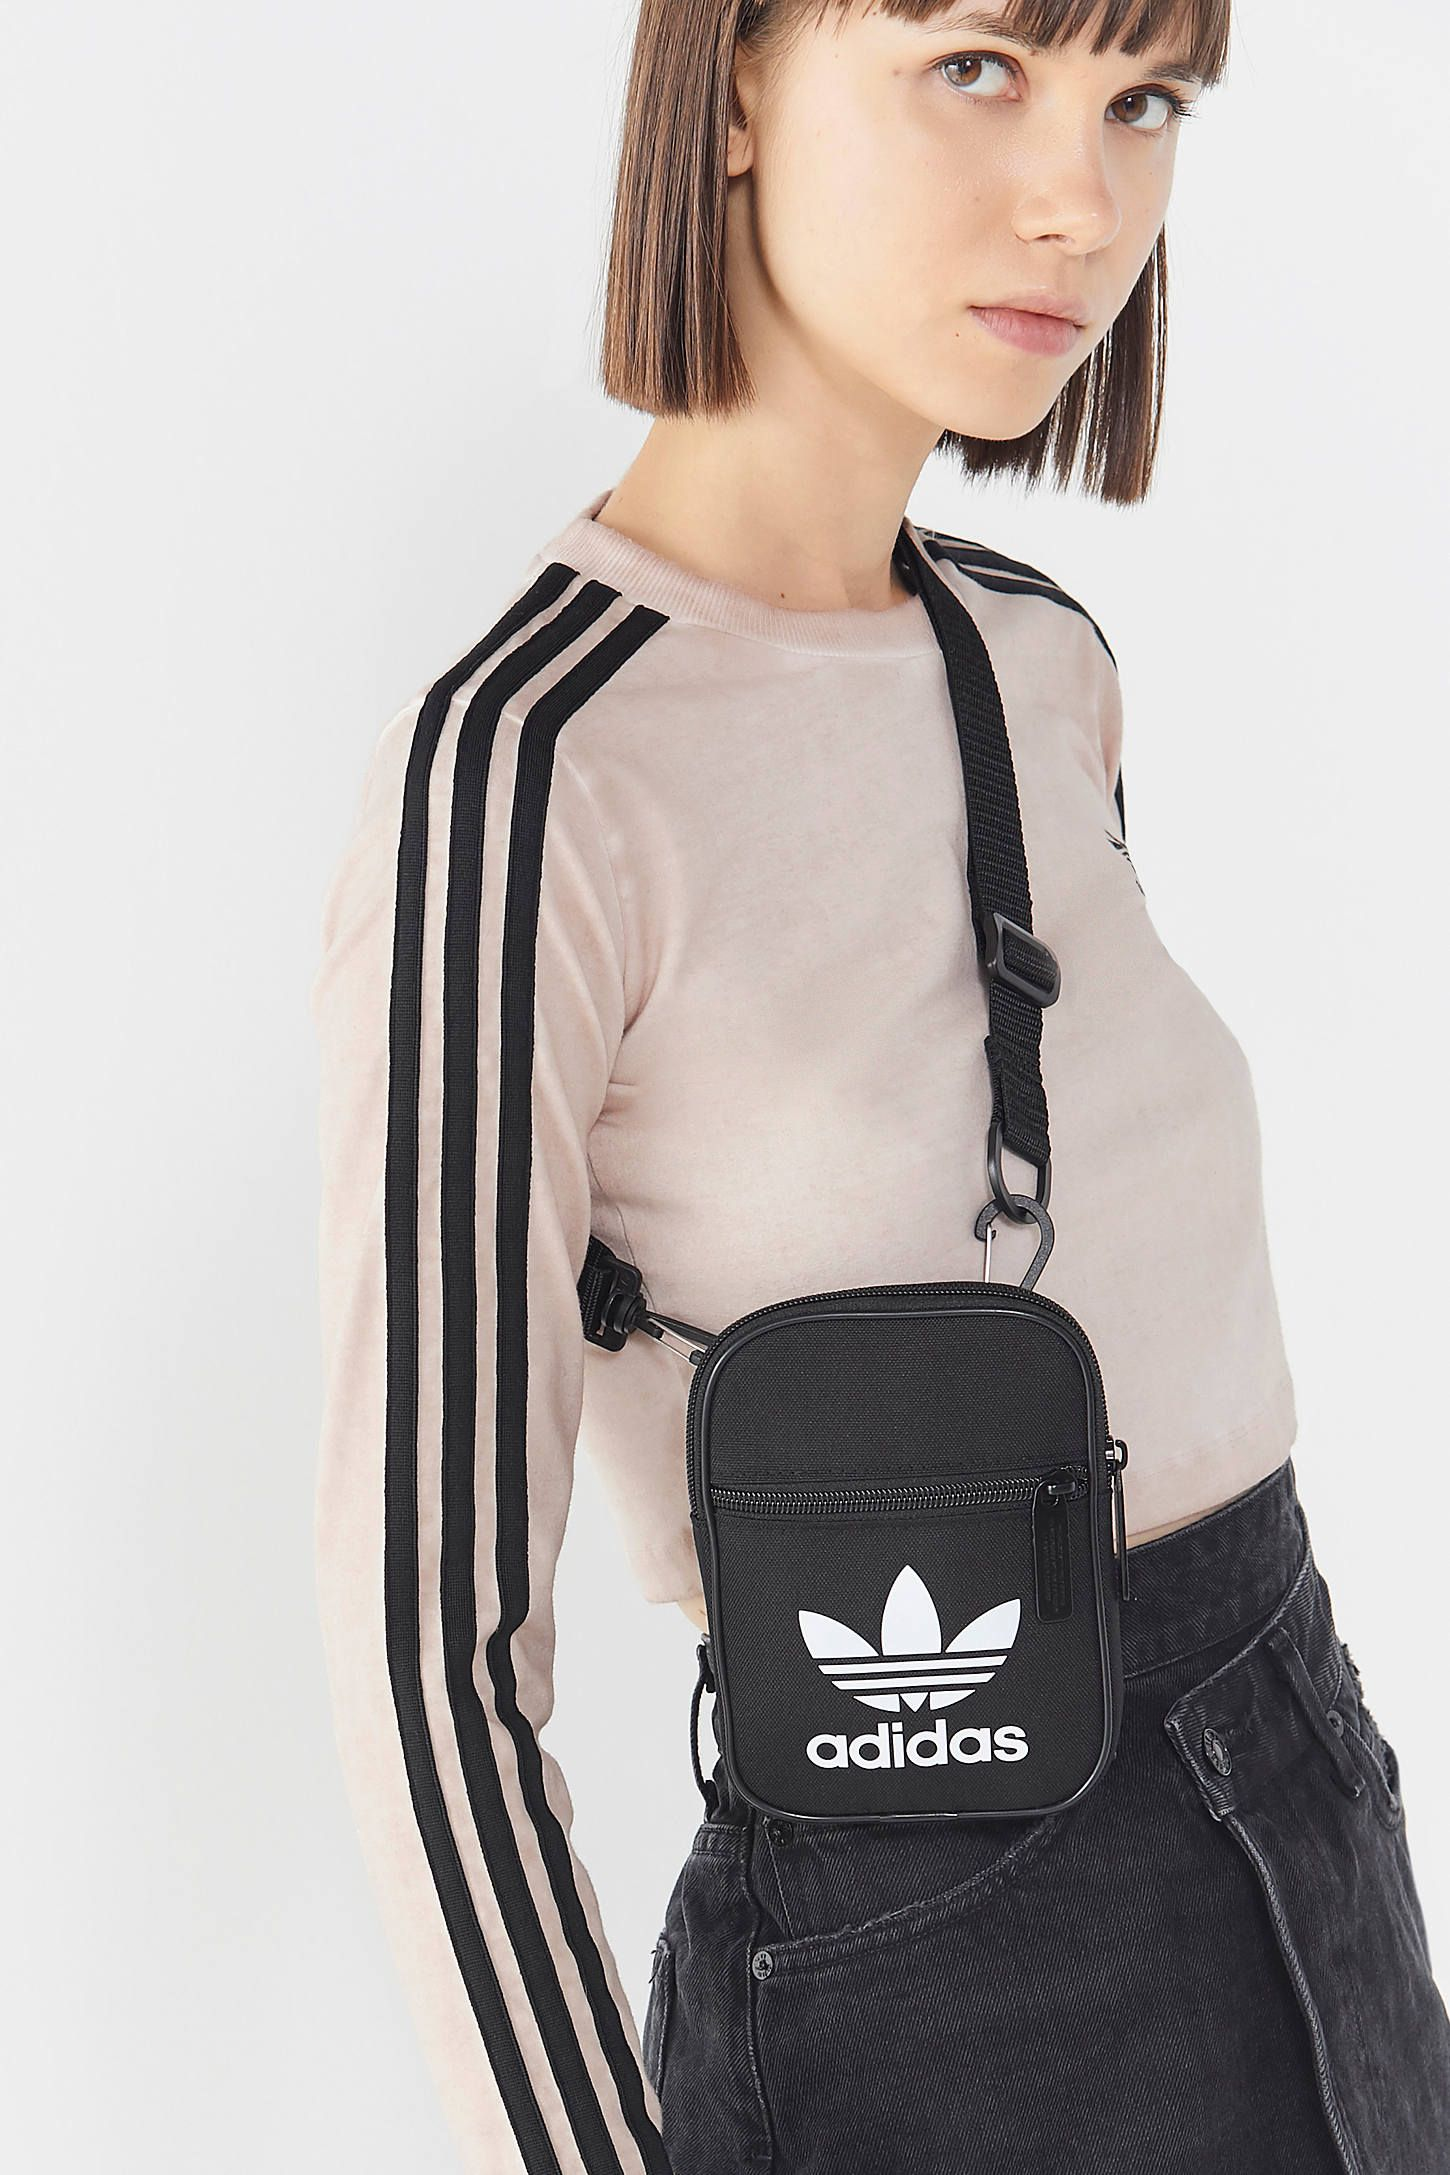 adidas Originals Trefoil Festival Crossbody Bag in 2019  0be4200cac60f